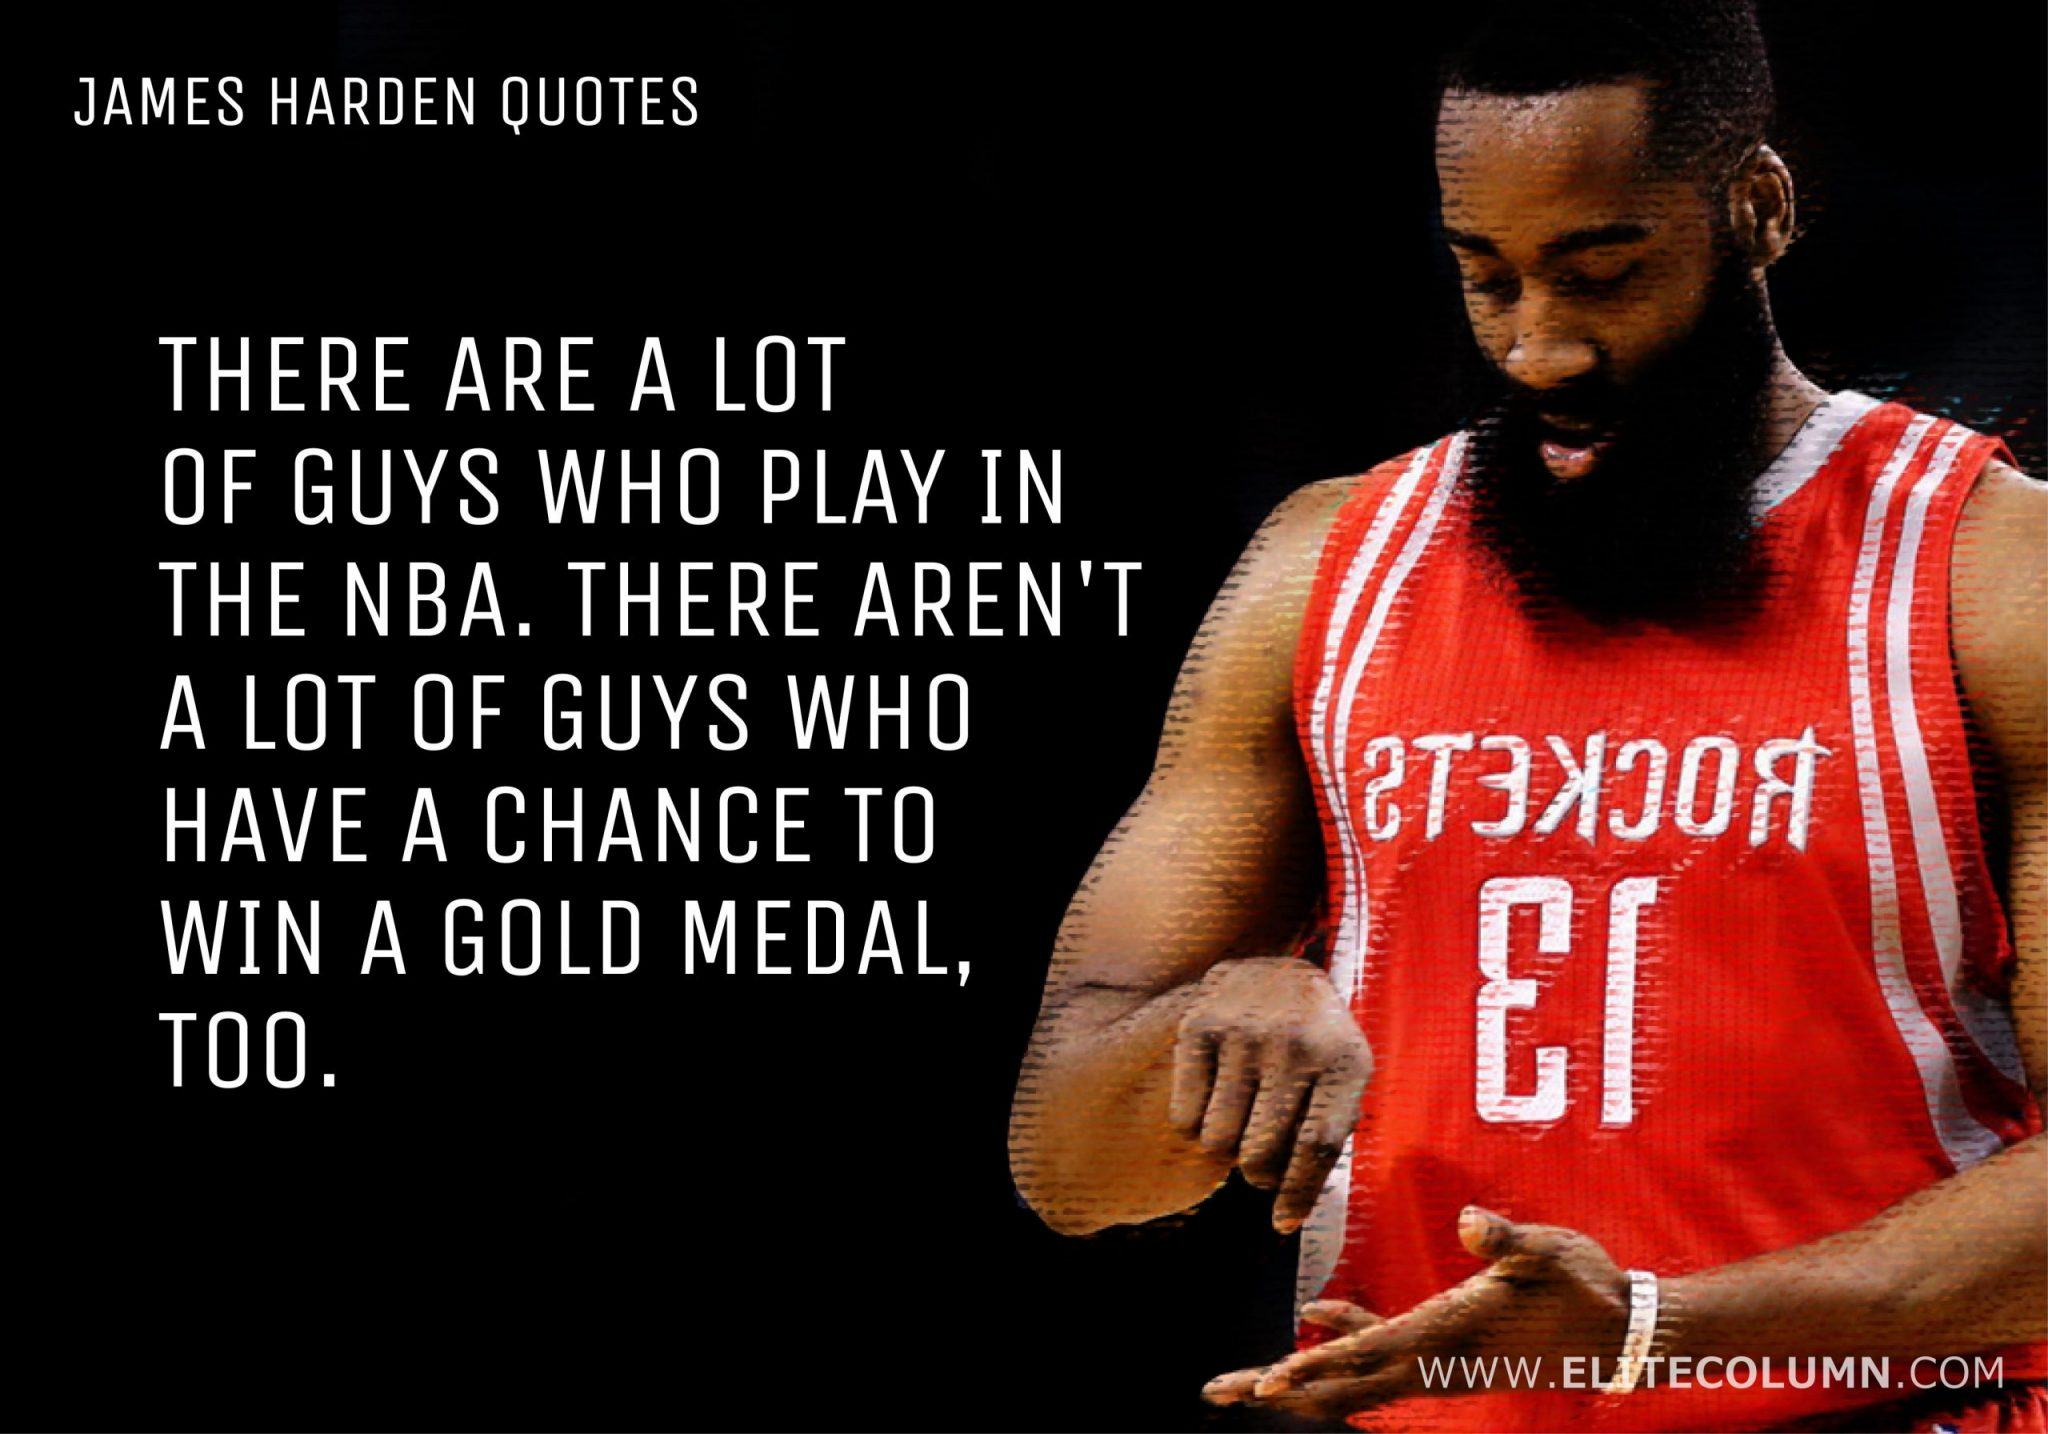 James Harden Quotes (5)